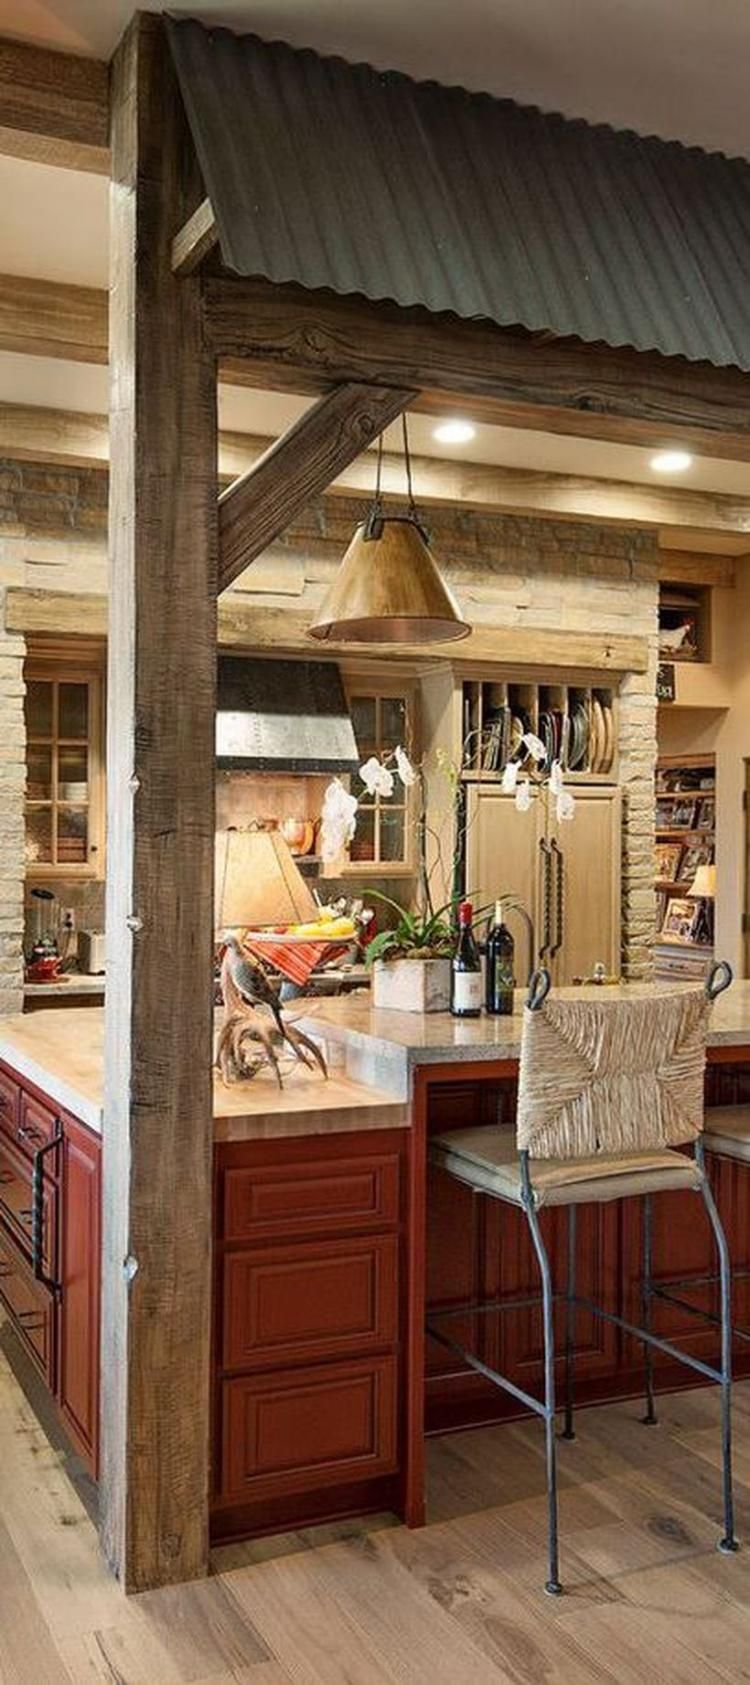 100+ Best Rustic Western Style Kitchen Decorations Ideas | Pinterest ...